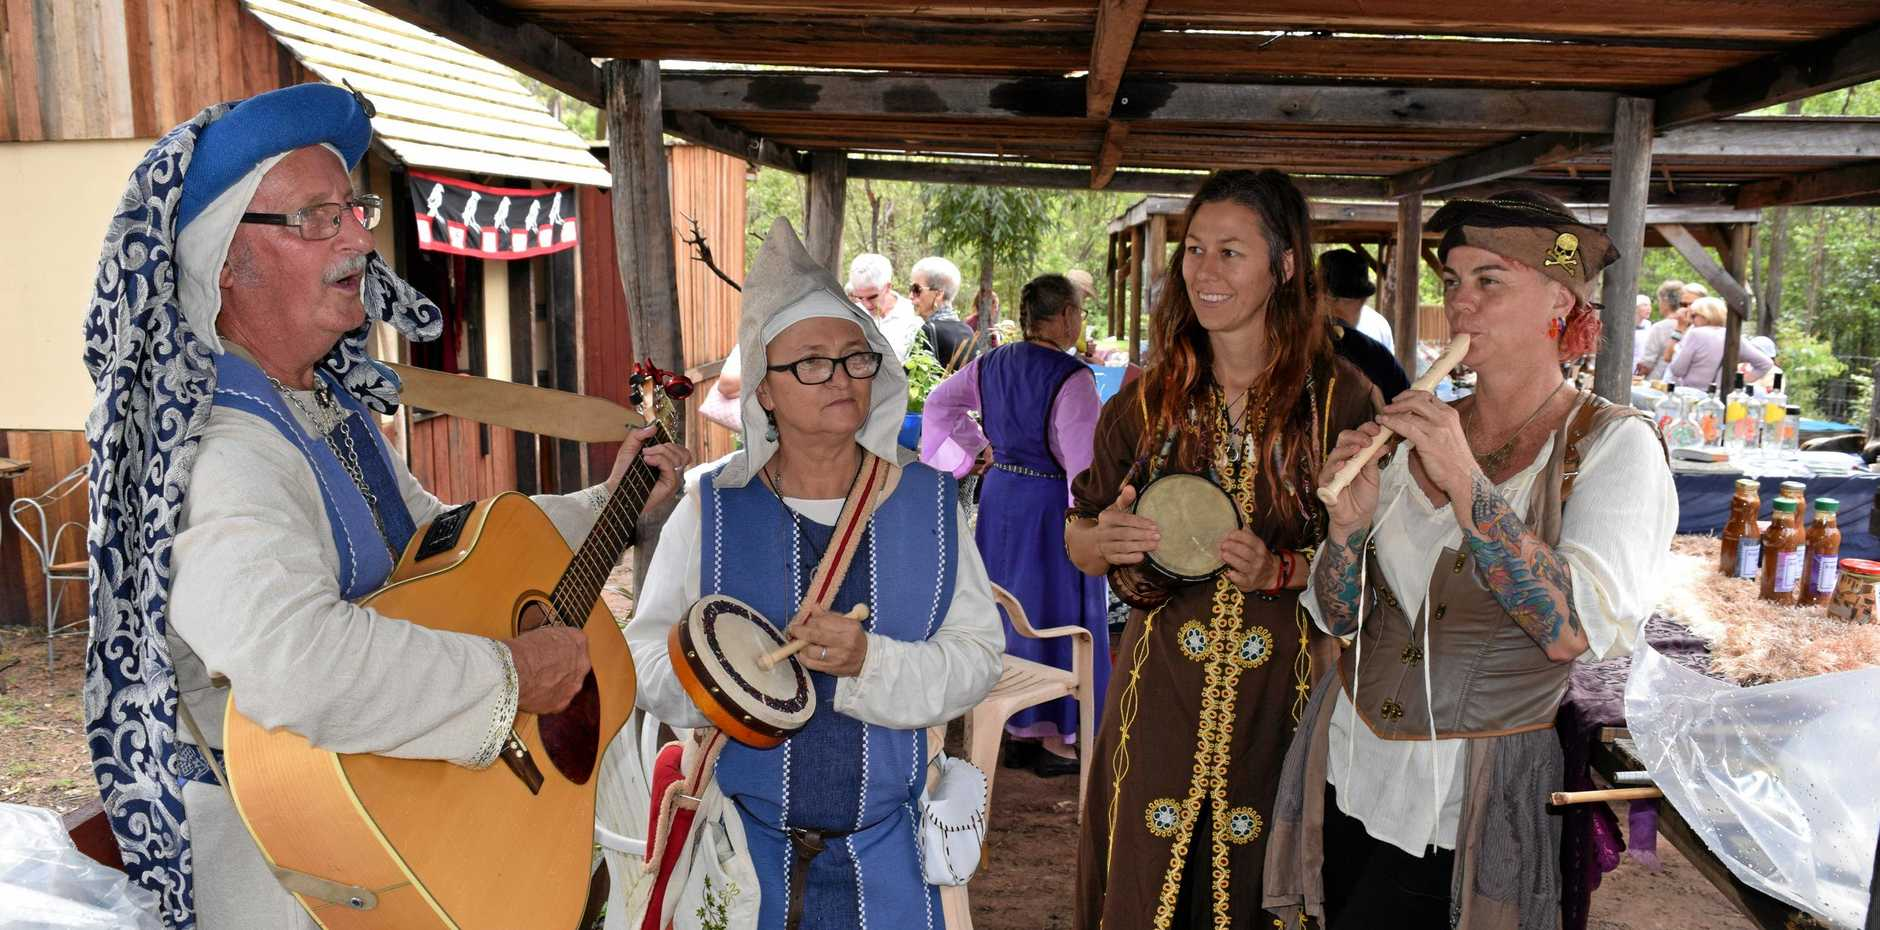 Victory Village Fayre - Making magic sounds (from left) minstrel Steve Bryson, Lady Jenny Bryson, Lady Peta Milne and Red Robyn.